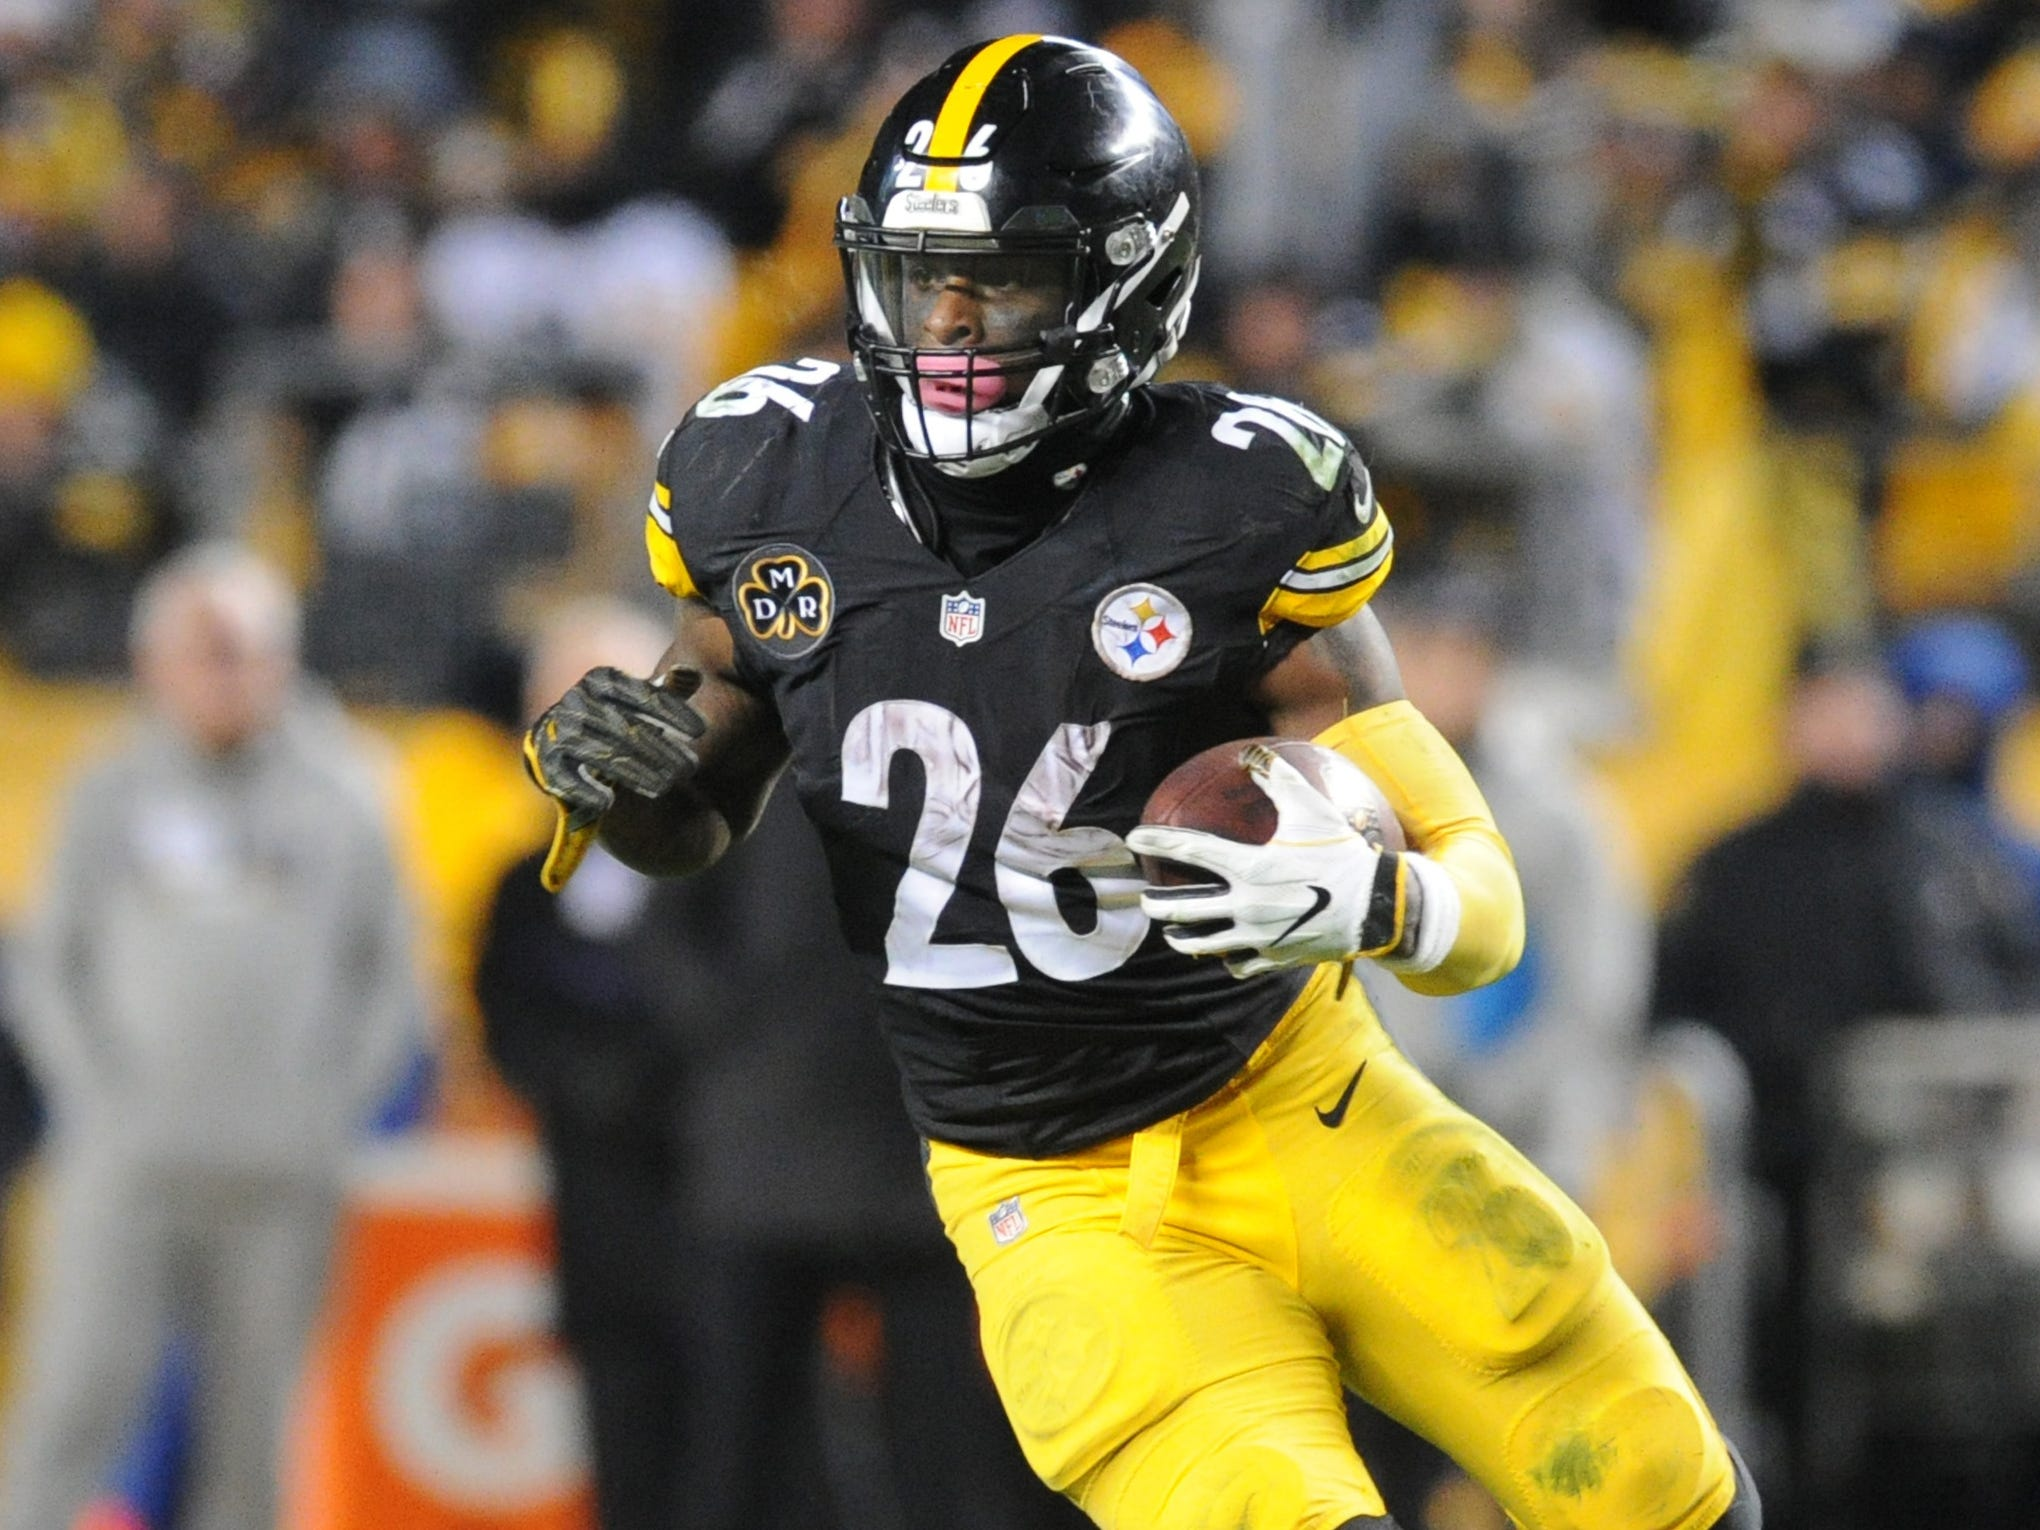 No. 1: Le'Veon Bell, RB, Steelers